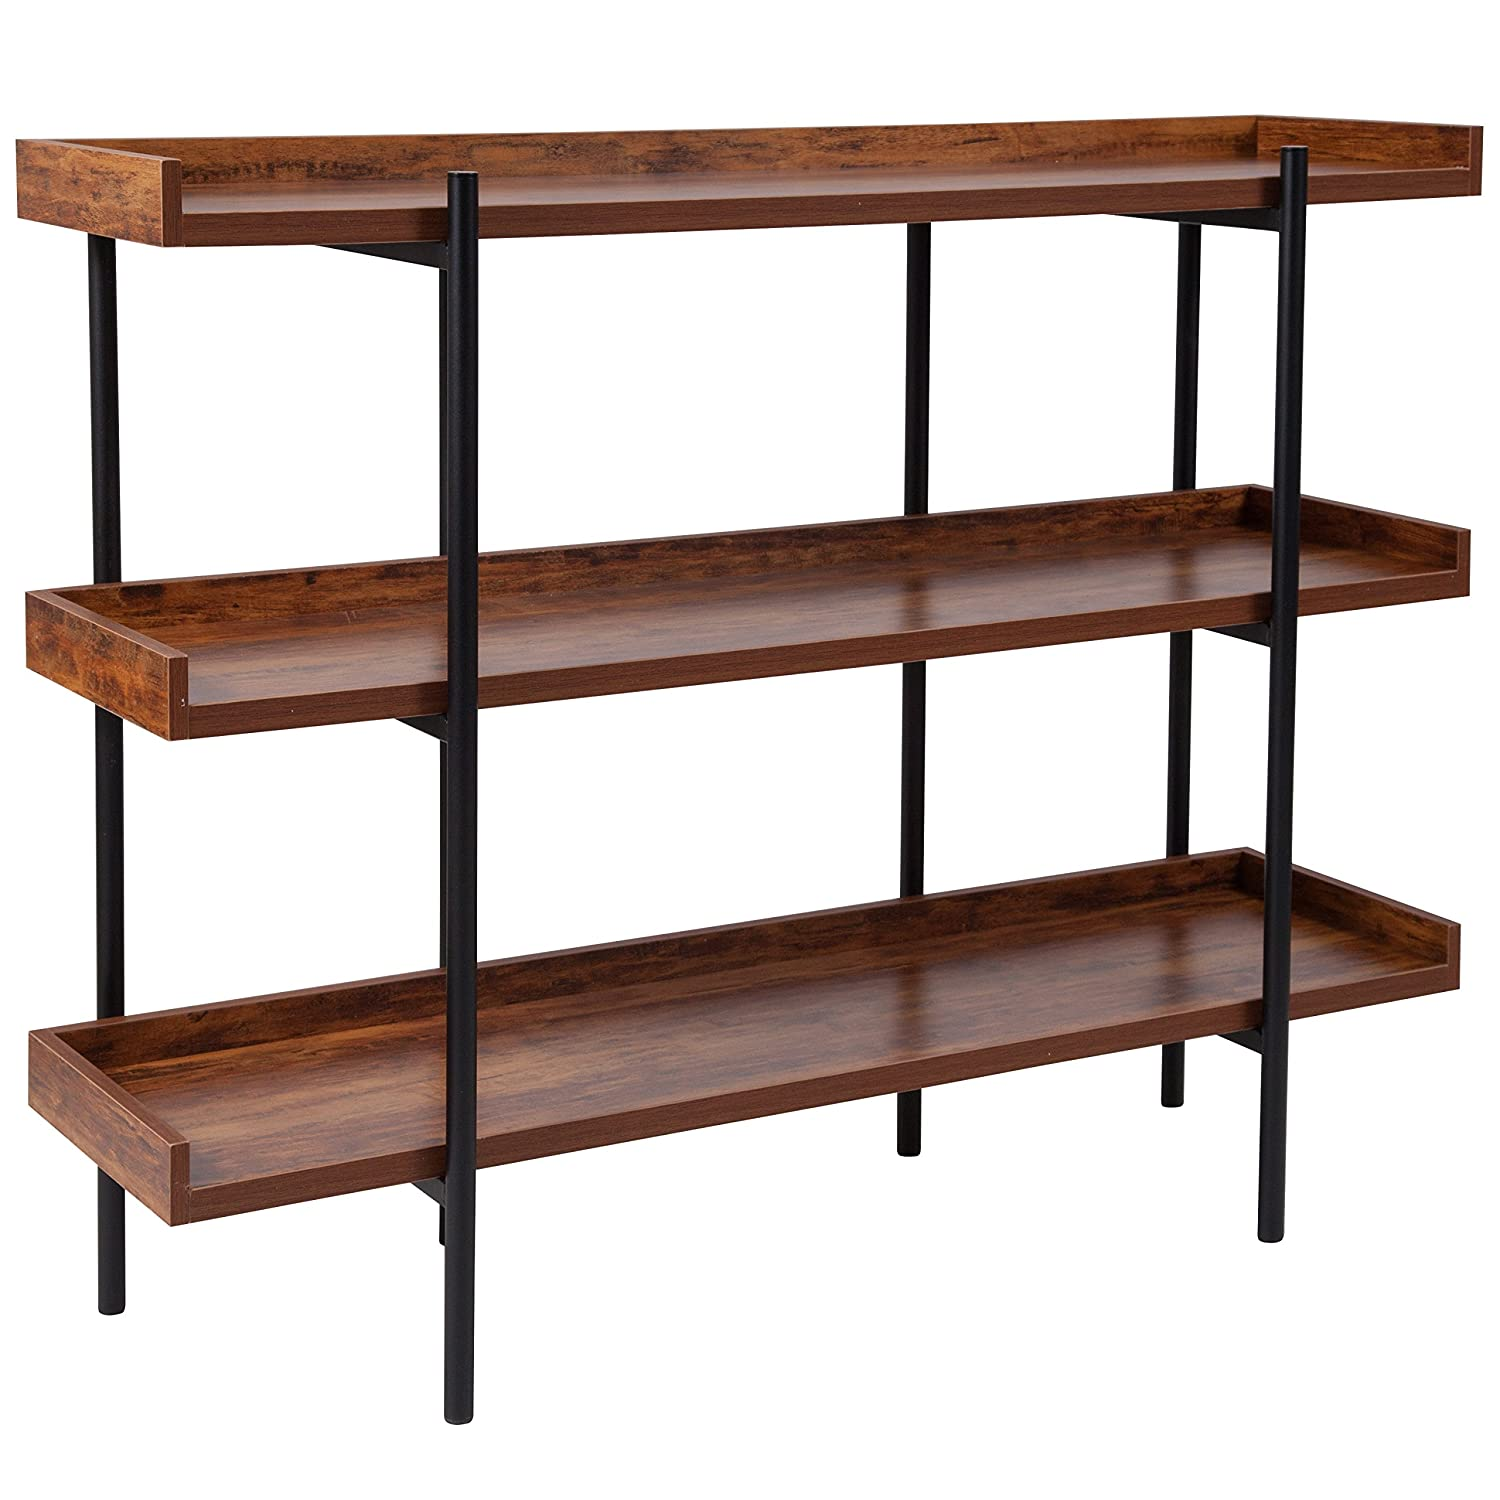 Attirant Amazon.com: Flash Furniture Mayfair Rustic Wood Grain Finish Storage Shelf  With Black Metal Frame: Kitchen U0026 Dining